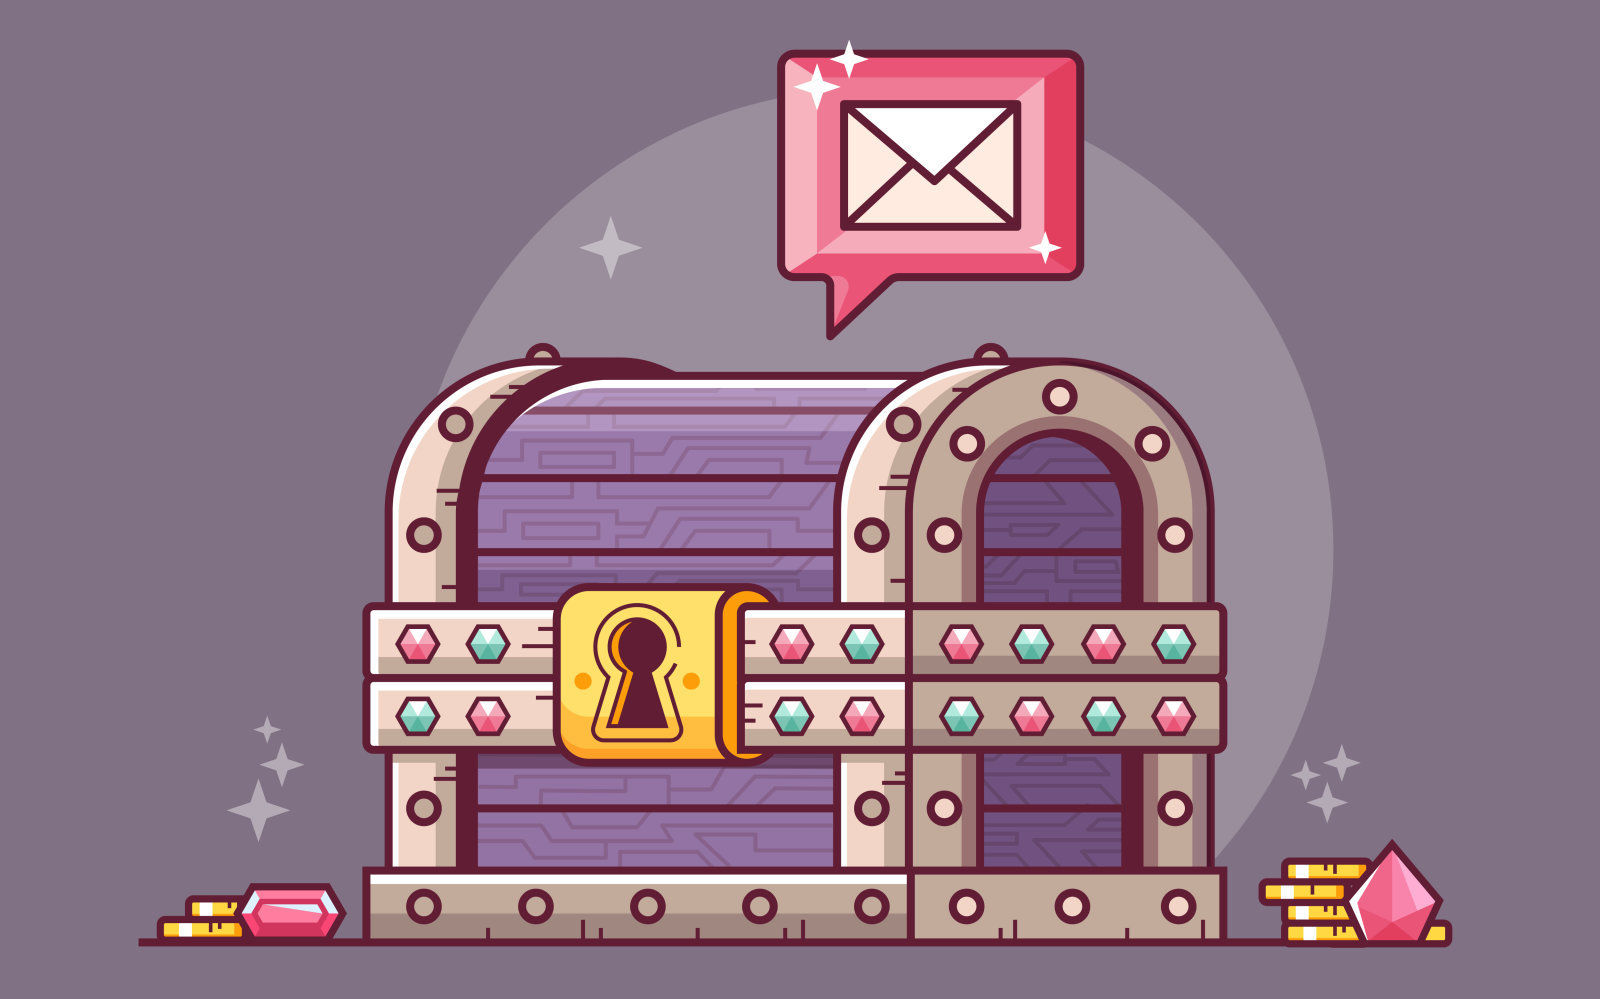 Getting email or important message concept with fantasy treasure chest. Receiving mail abstract RPG themed illustration. Opening magic box.